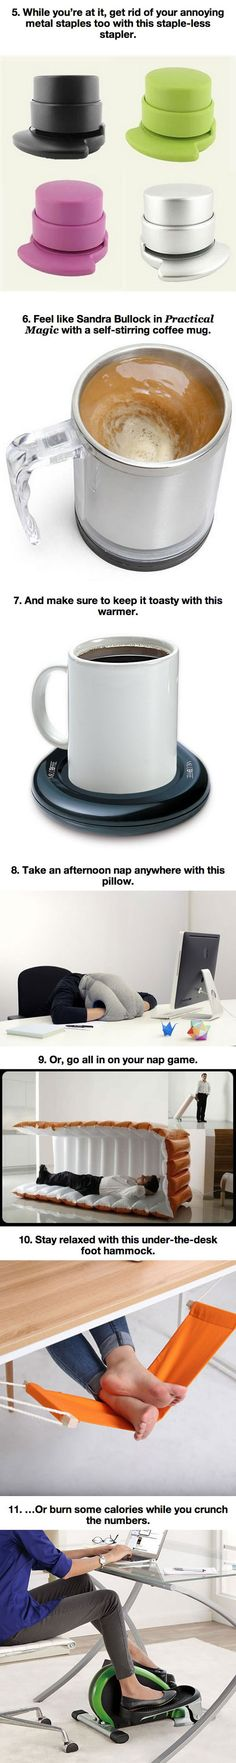 Great Gadgets shut up and take my money!